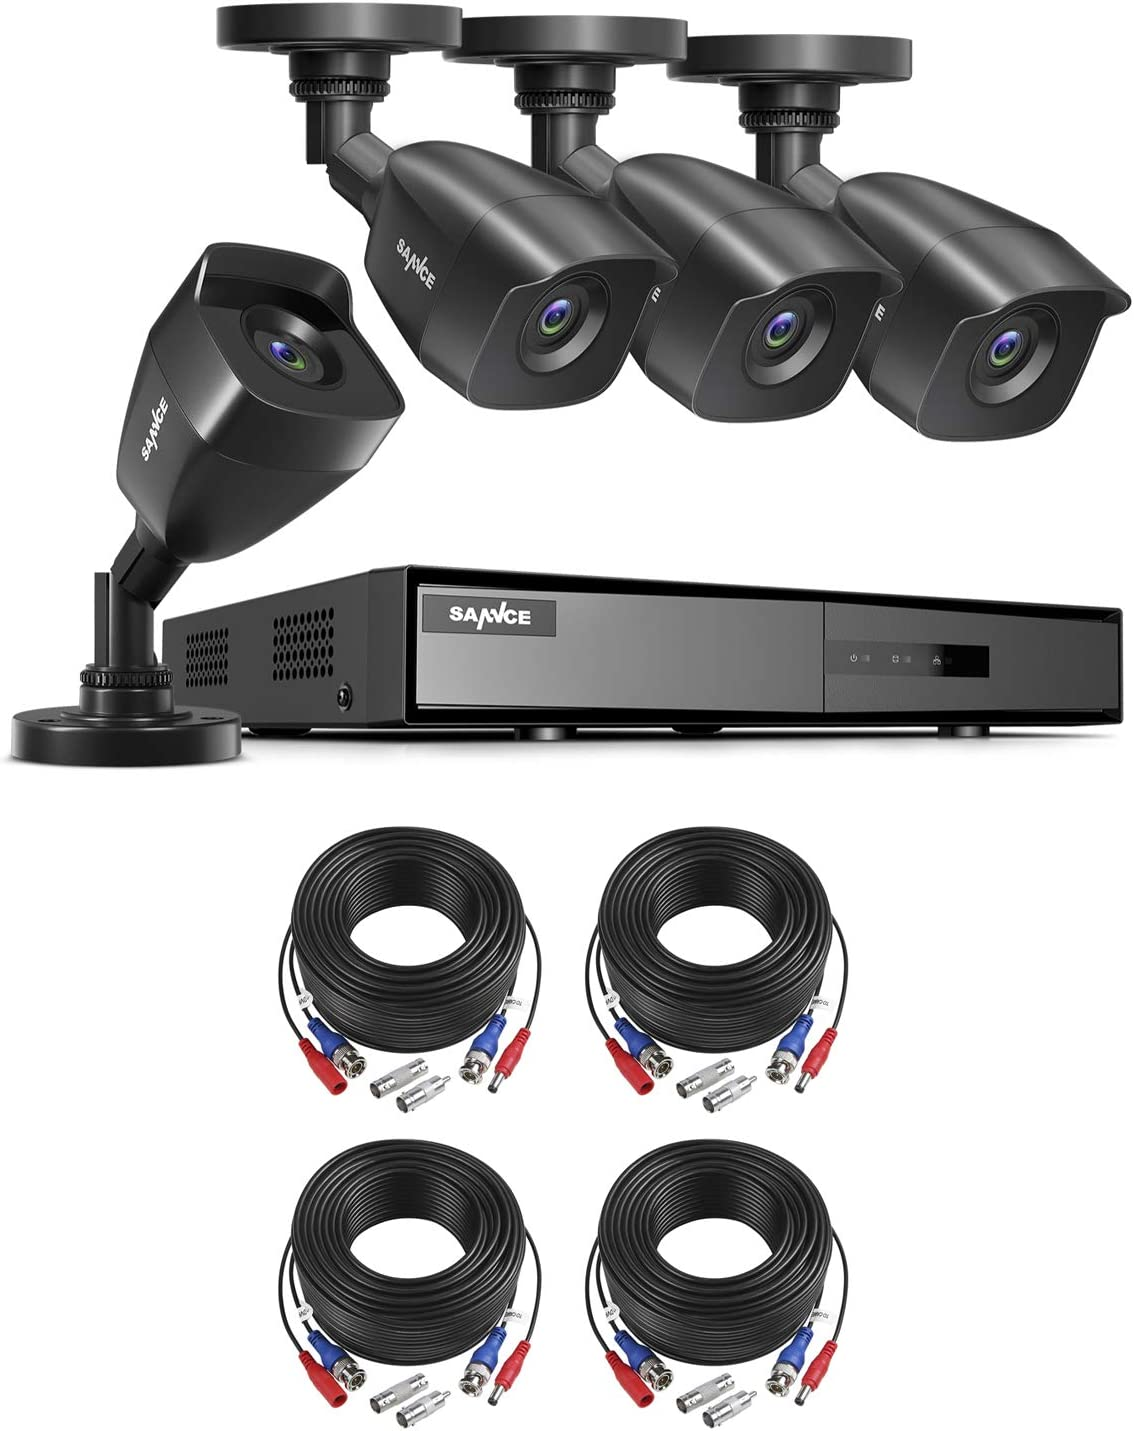 1080P Wired Security Camera System with 100 ft Security Cable